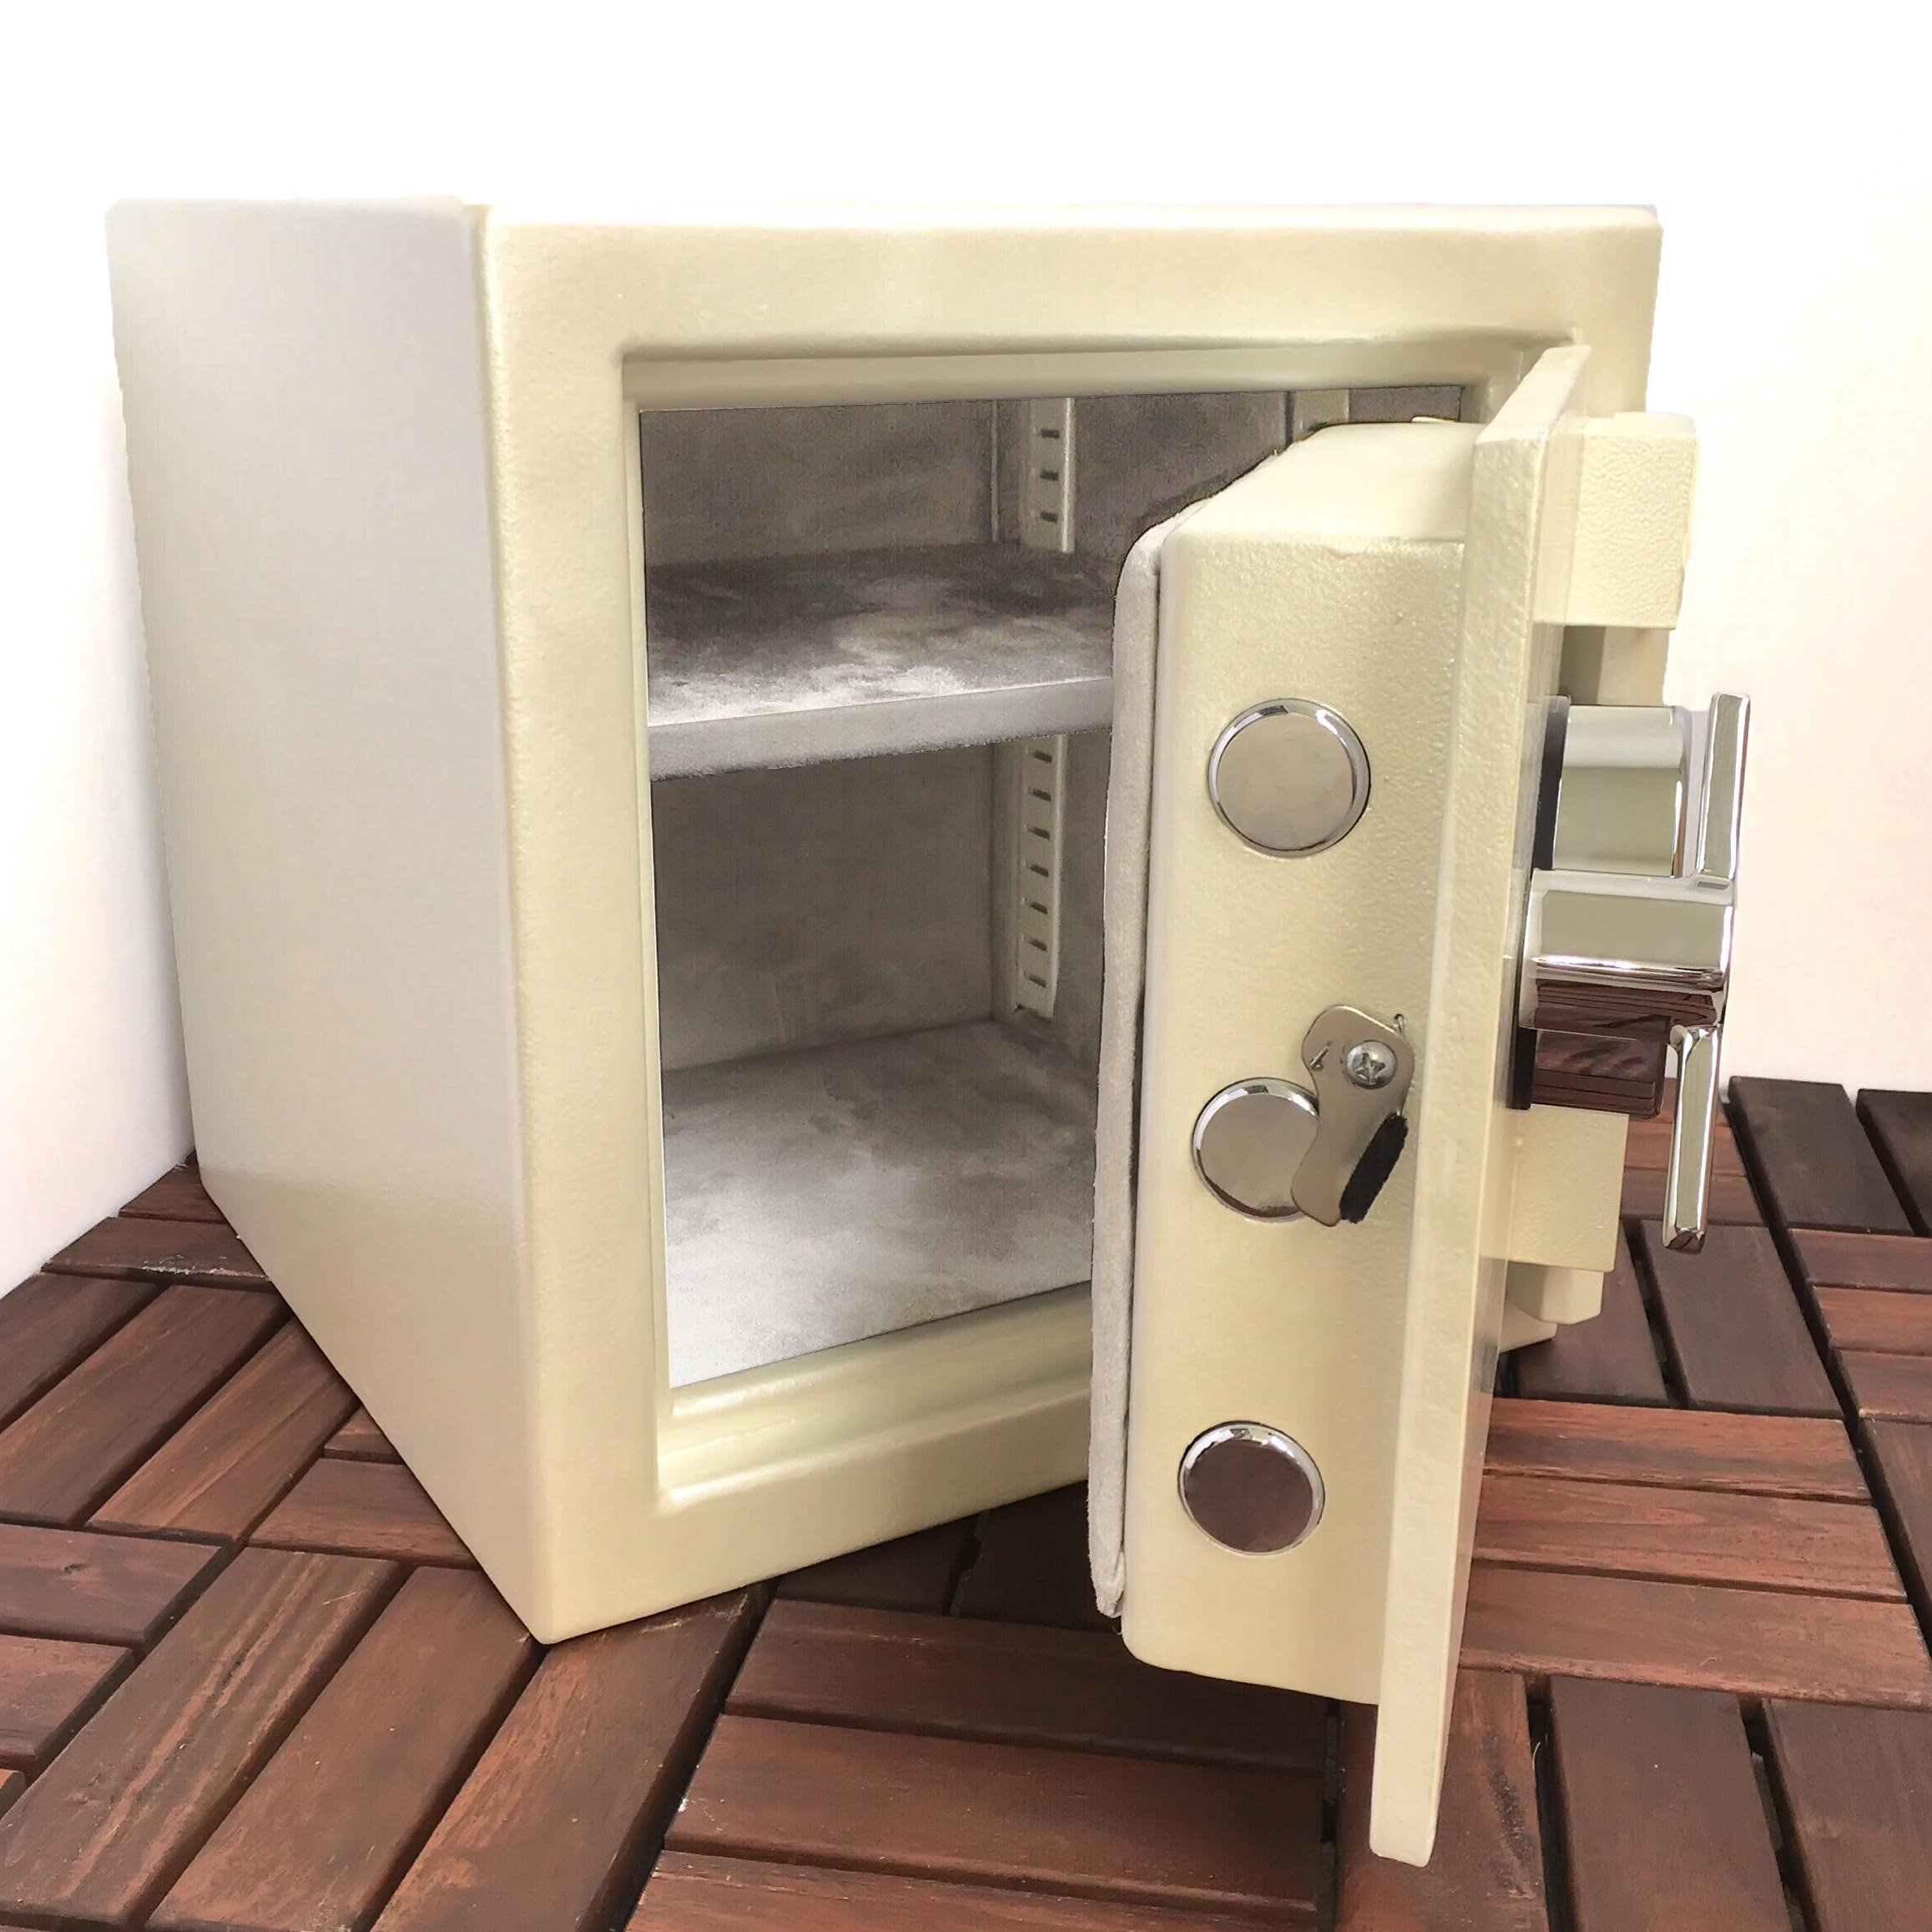 The Cube Personal Jewelry Watch Gun Safe By Apex Safes (Pearl Mist)